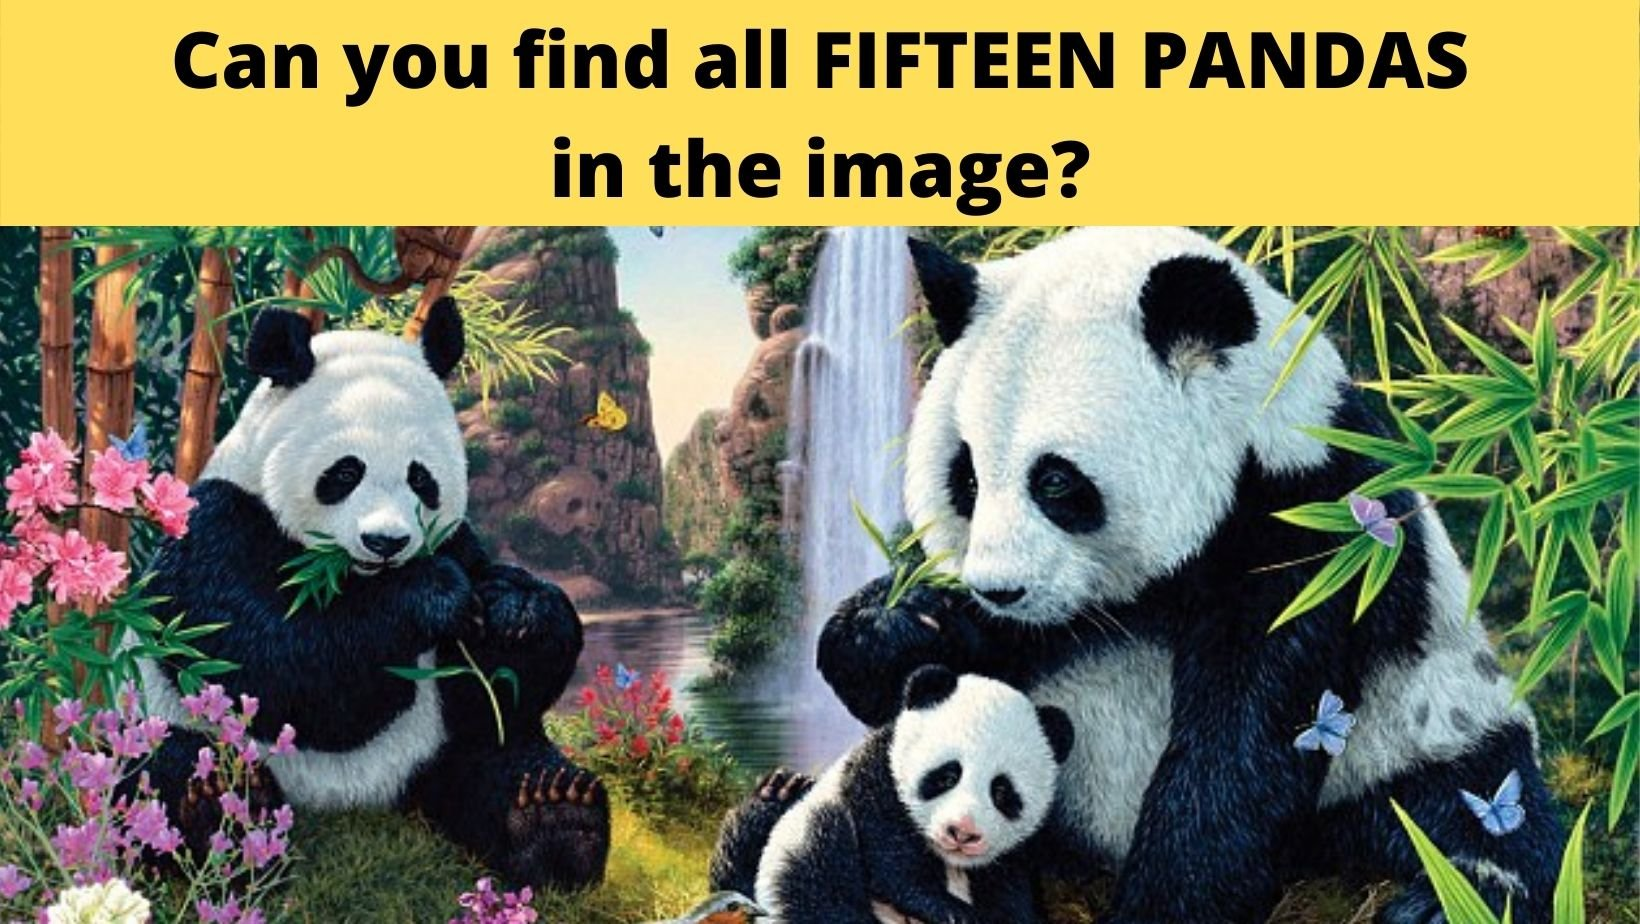 cover 22.jpg?resize=412,275 - There Are FIFTEEN PANDAS In This Photo, Can You Find Them All?